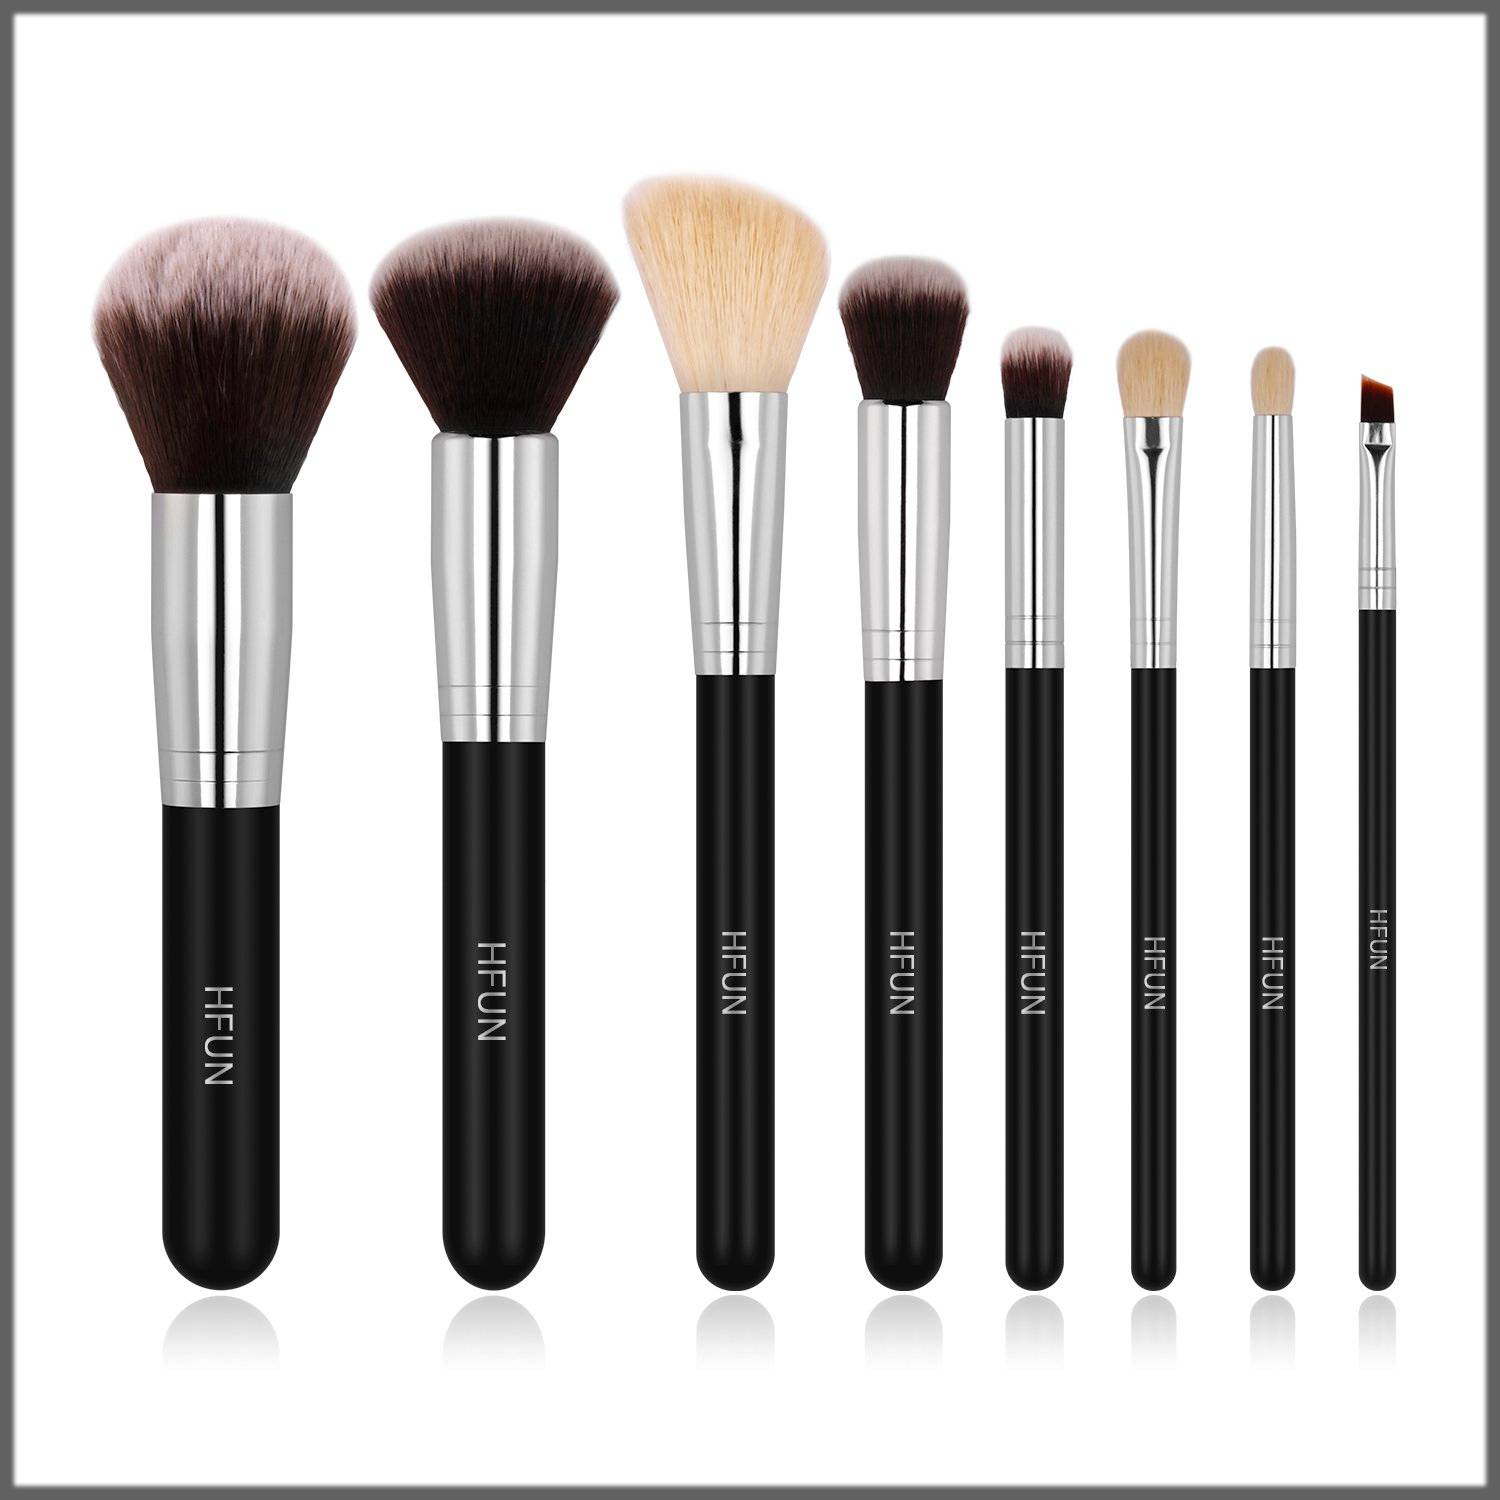 use best brushes to apply blush on perfectly at home